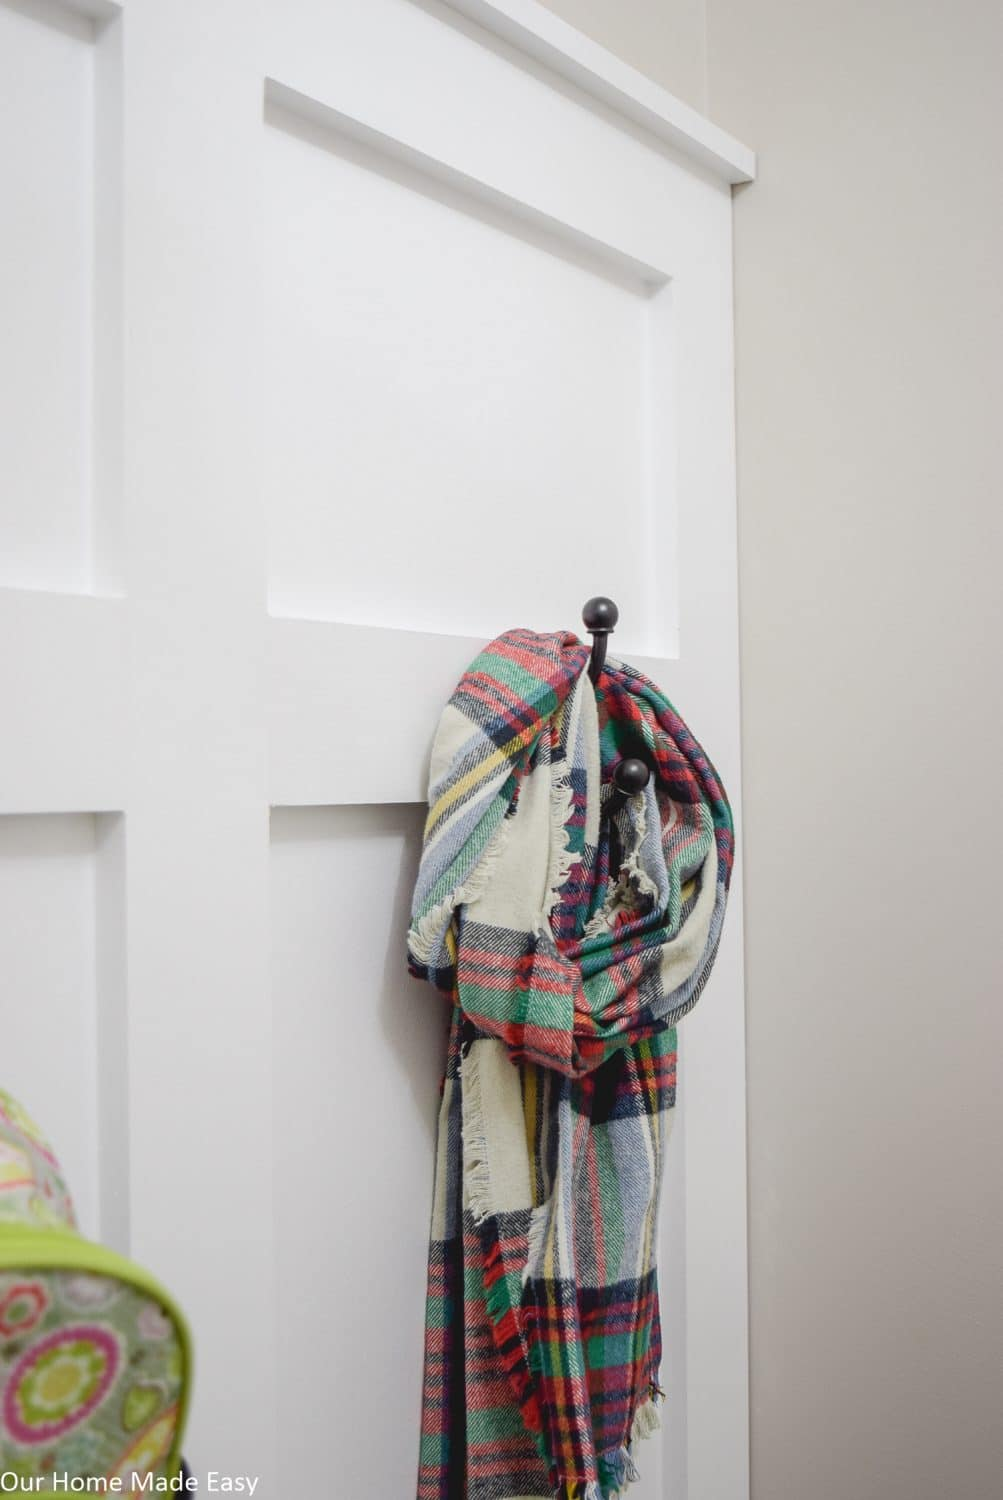 These hooks were the perfect addition to our small mudroom space to keep clothes and jackets off the floor